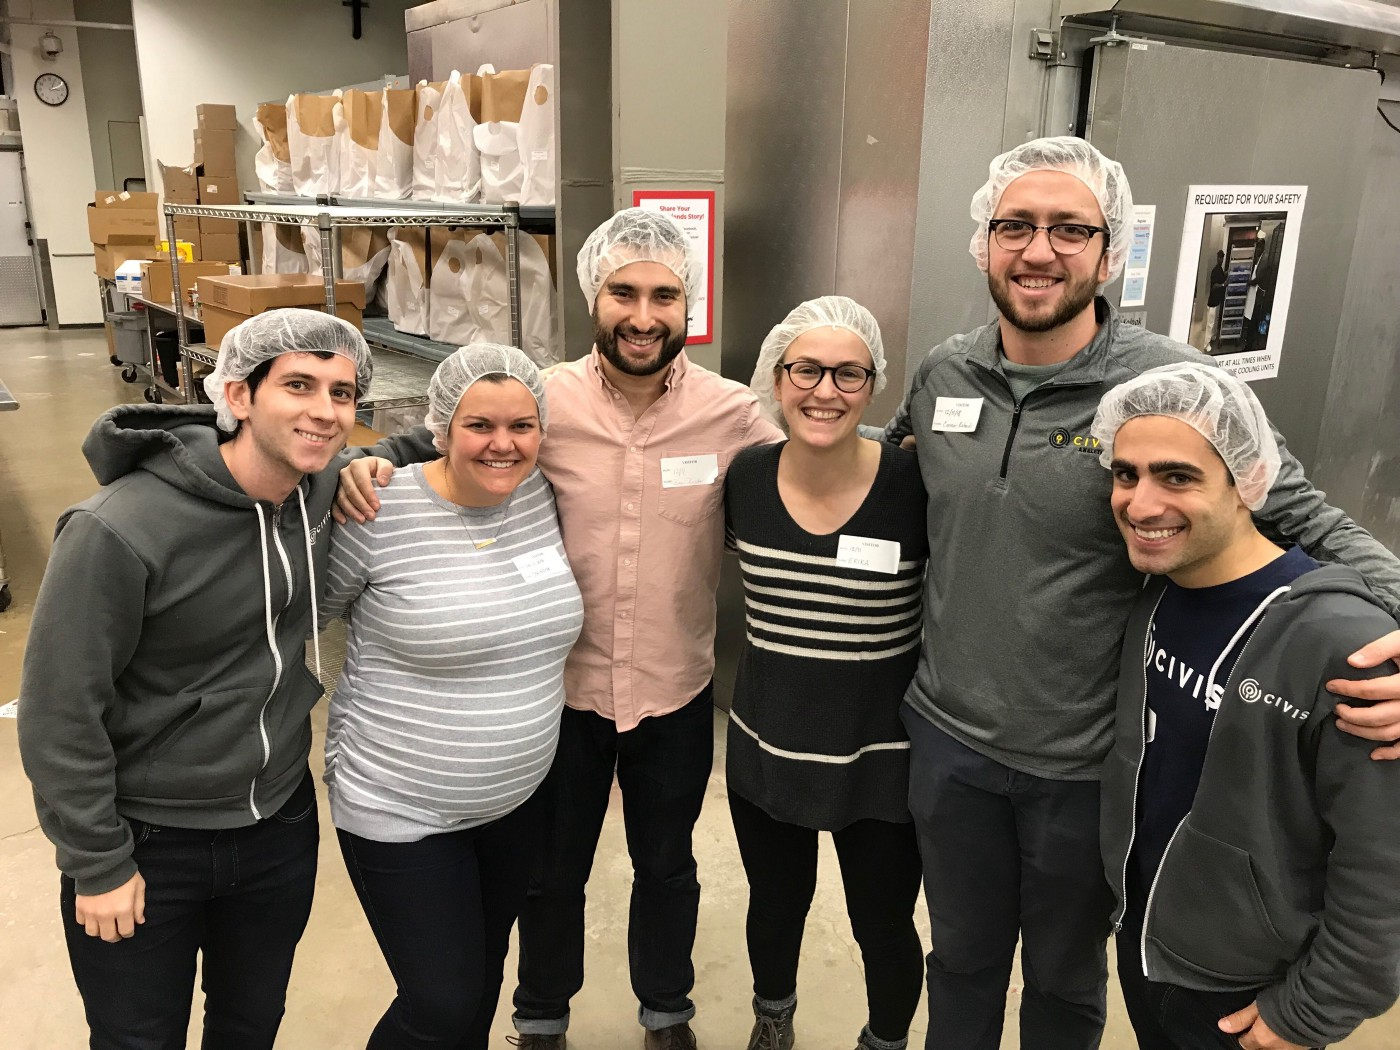 Civis employees in Washington D.C. volunteer day at Food and Friends